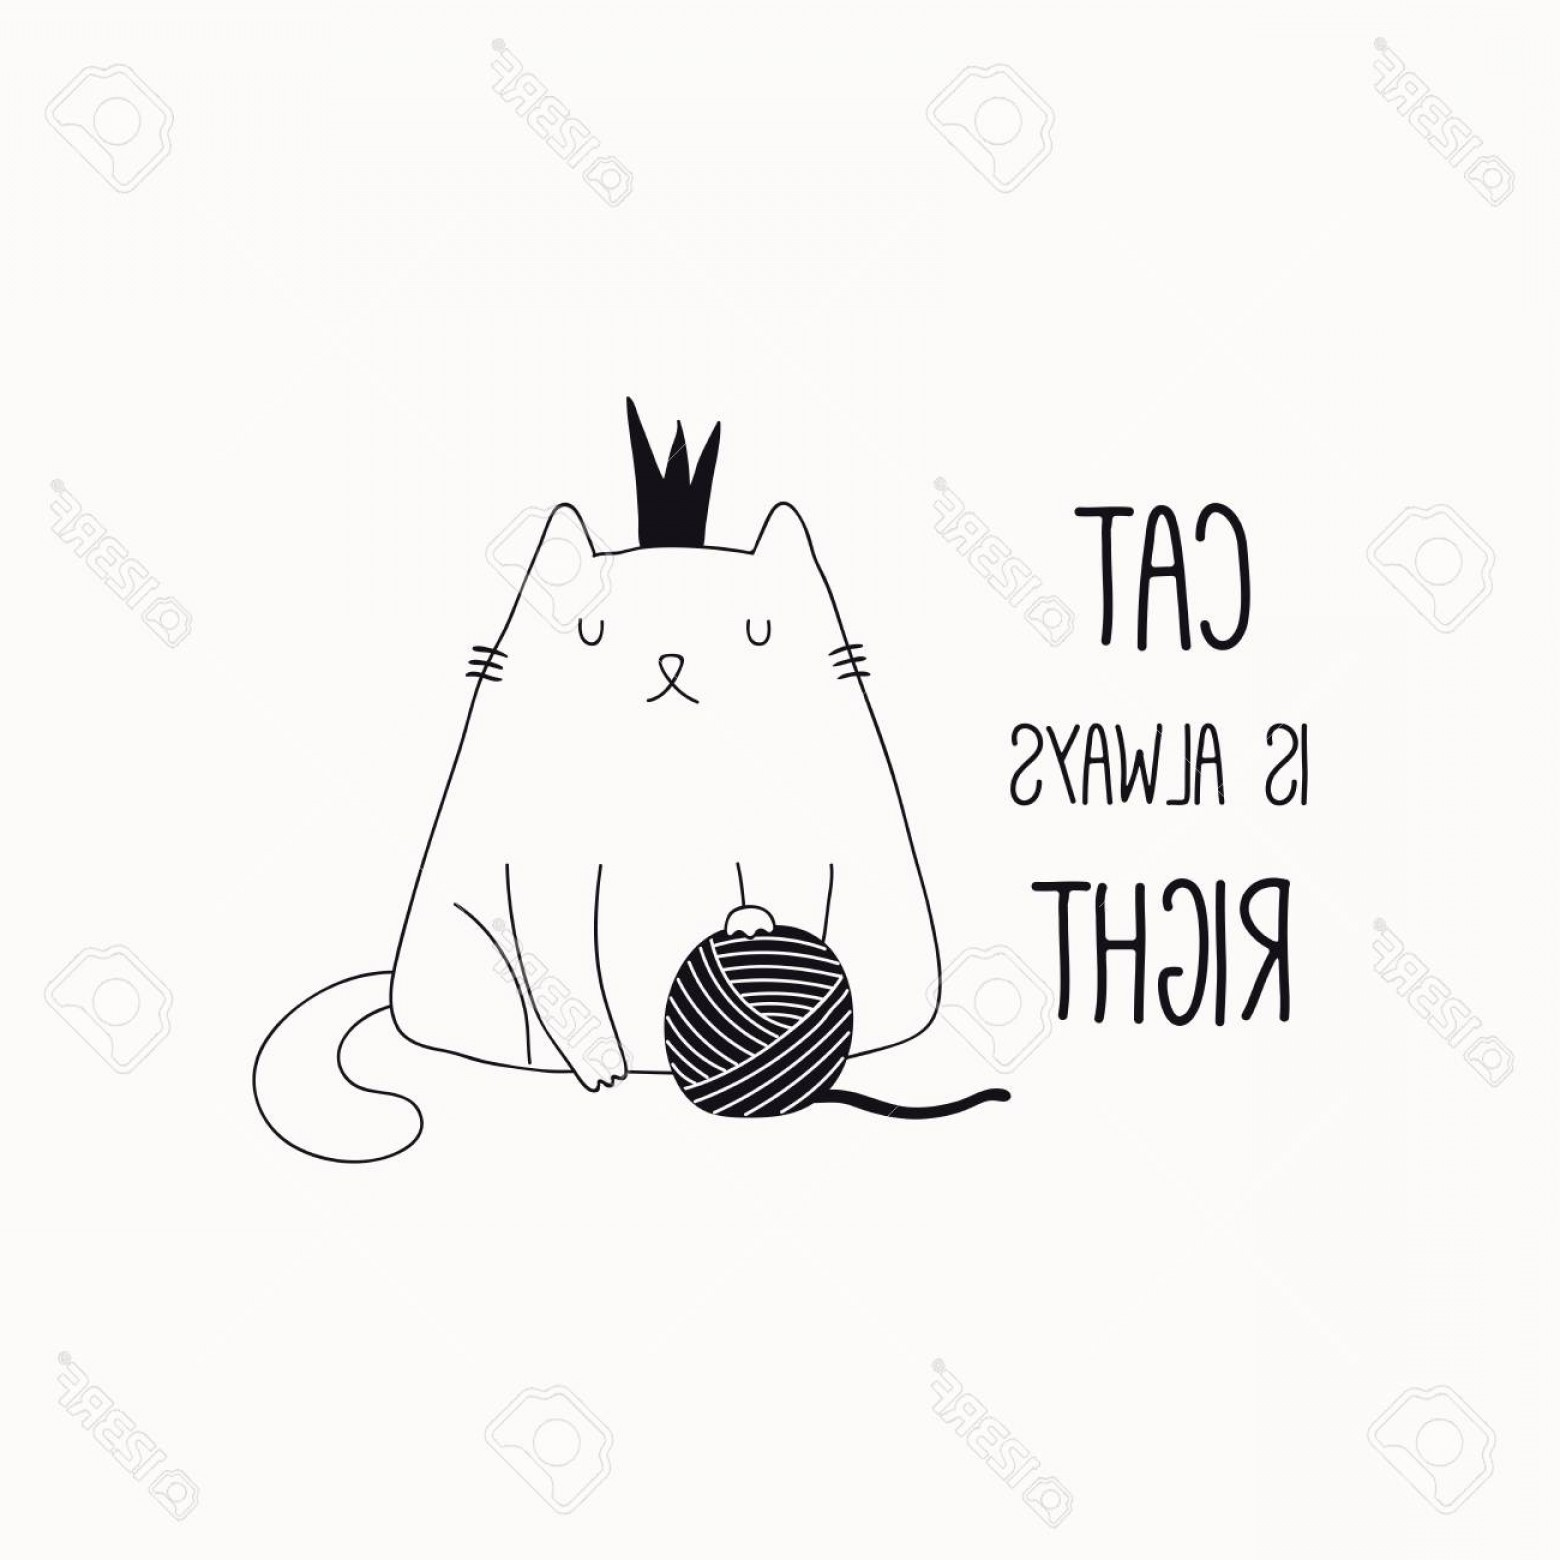 Funny Black And White Vector: Photostock Vector Hand Drawn Black And White Vector Illustration Of A Cute Funny Cat In A Crown With Yarn Ball Quote C